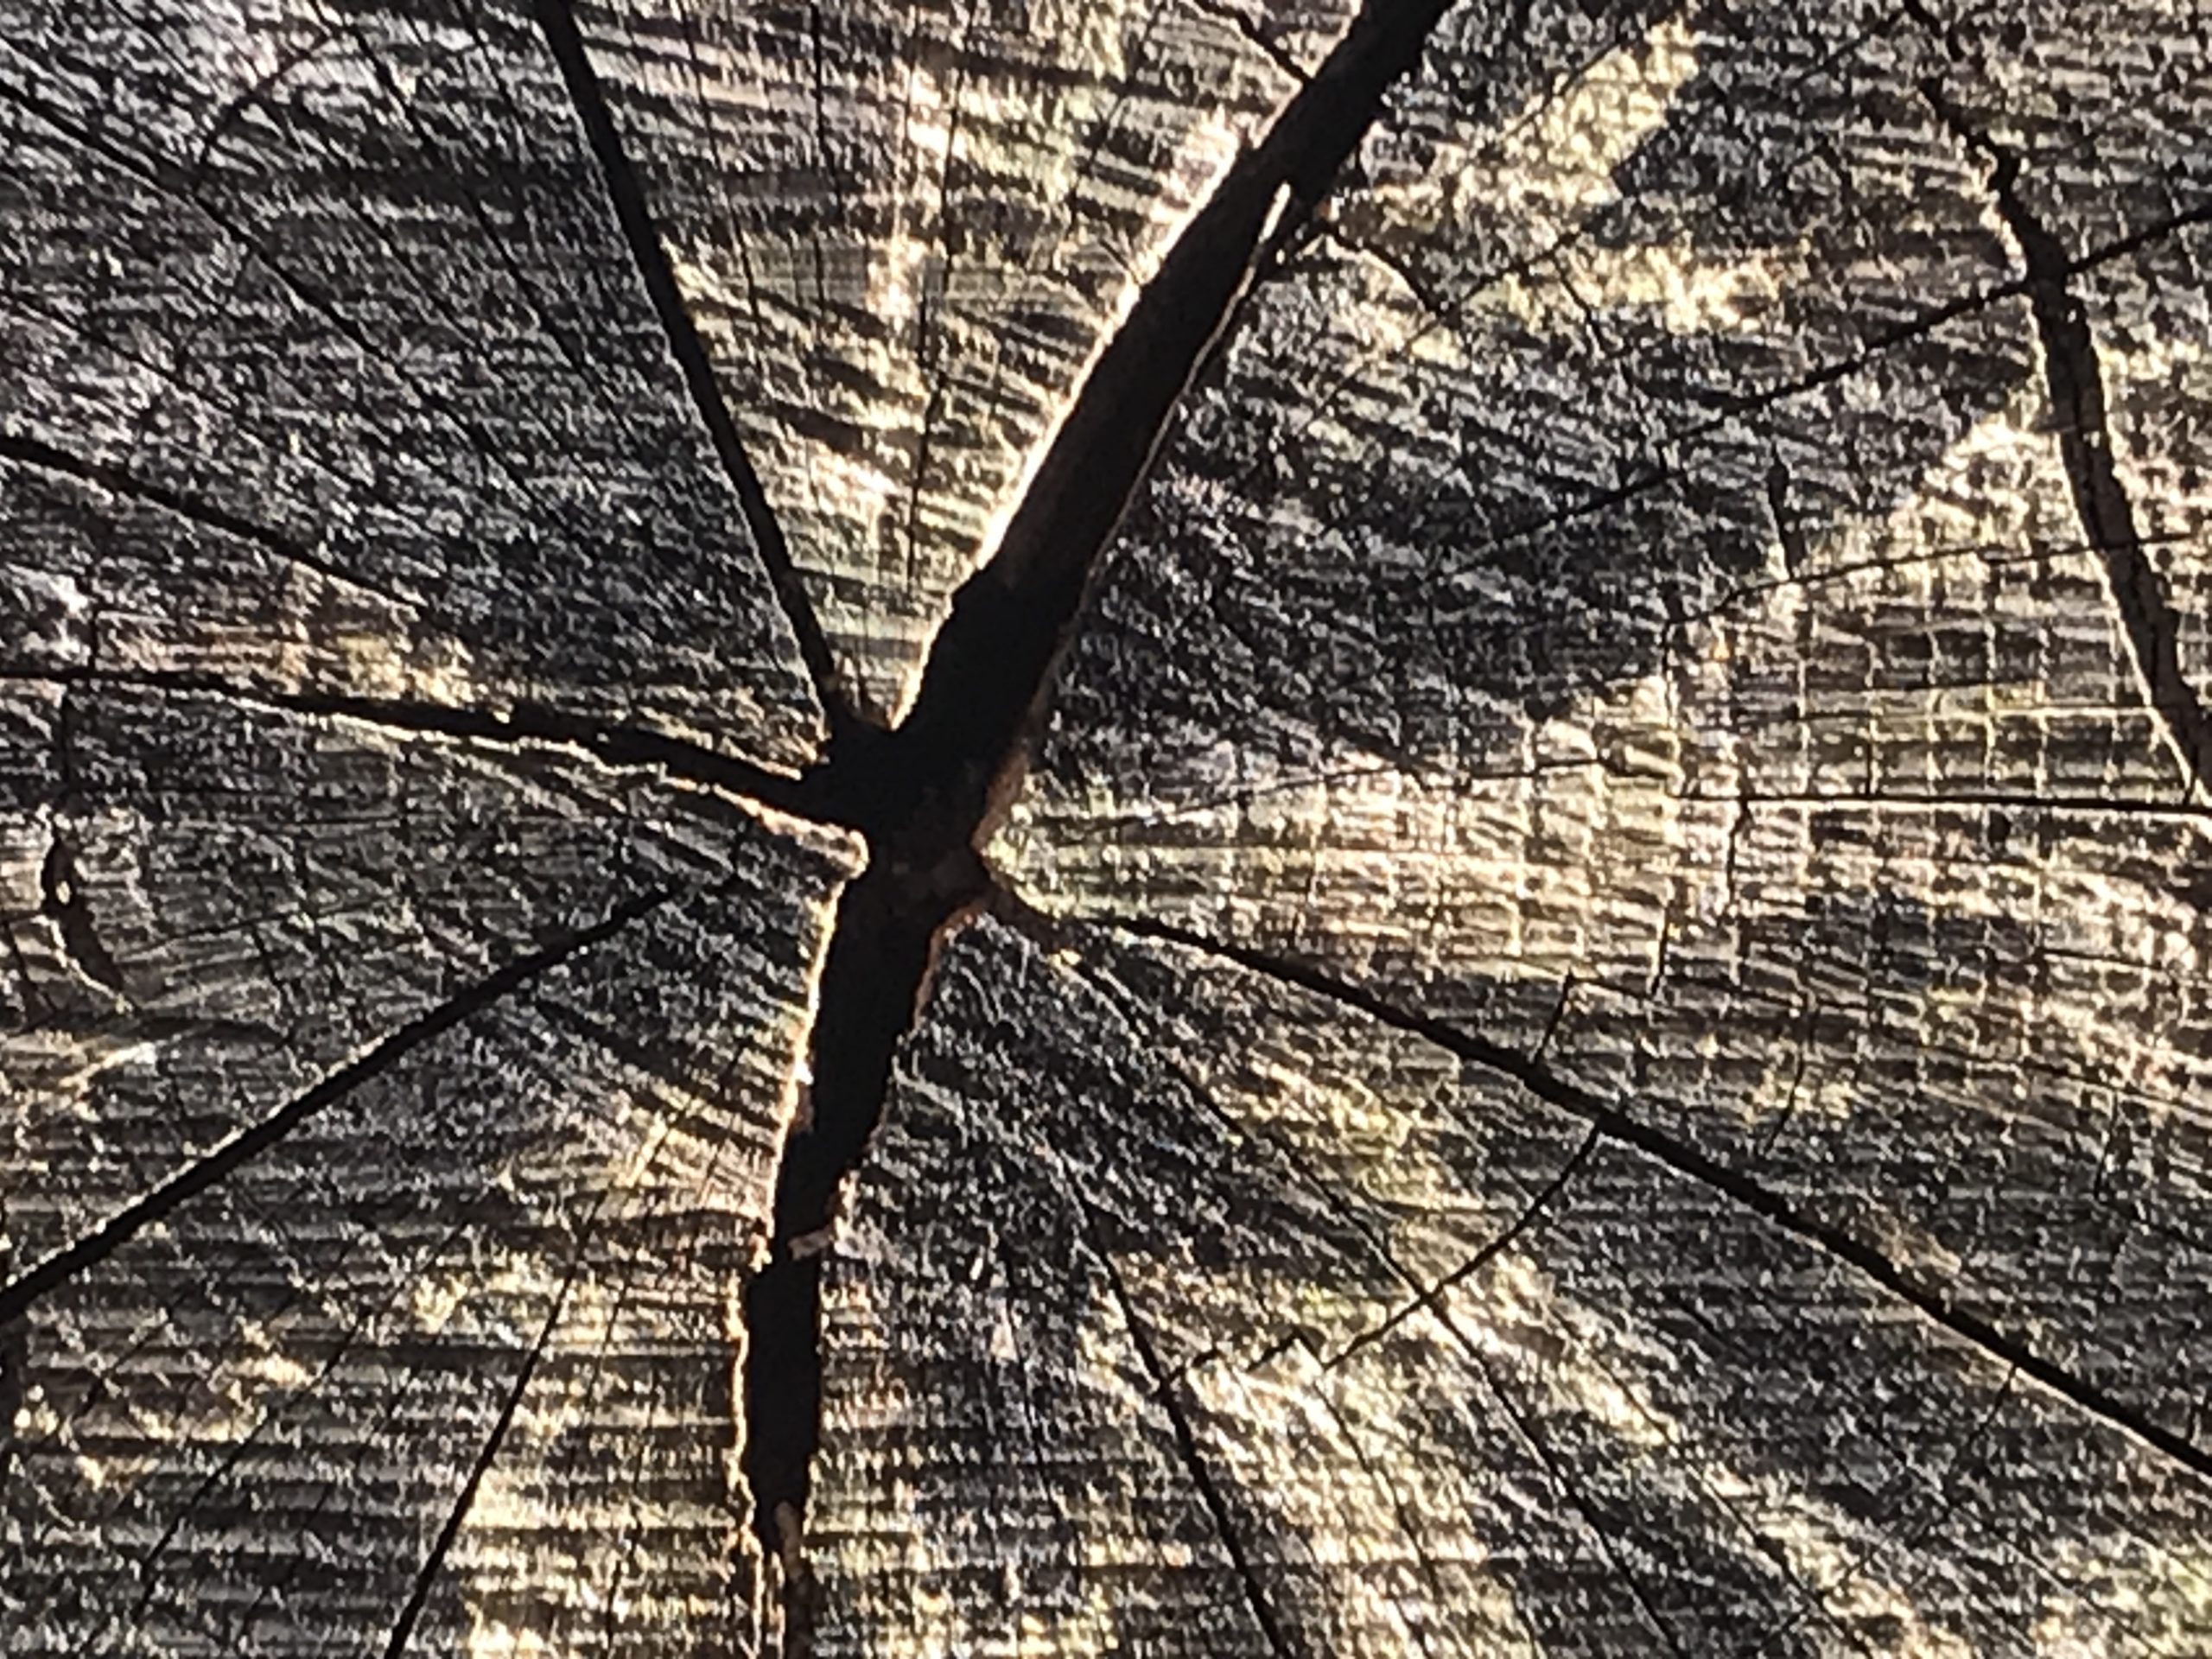 The image is here to show checks in the heartwood, good for burning not for sawing.